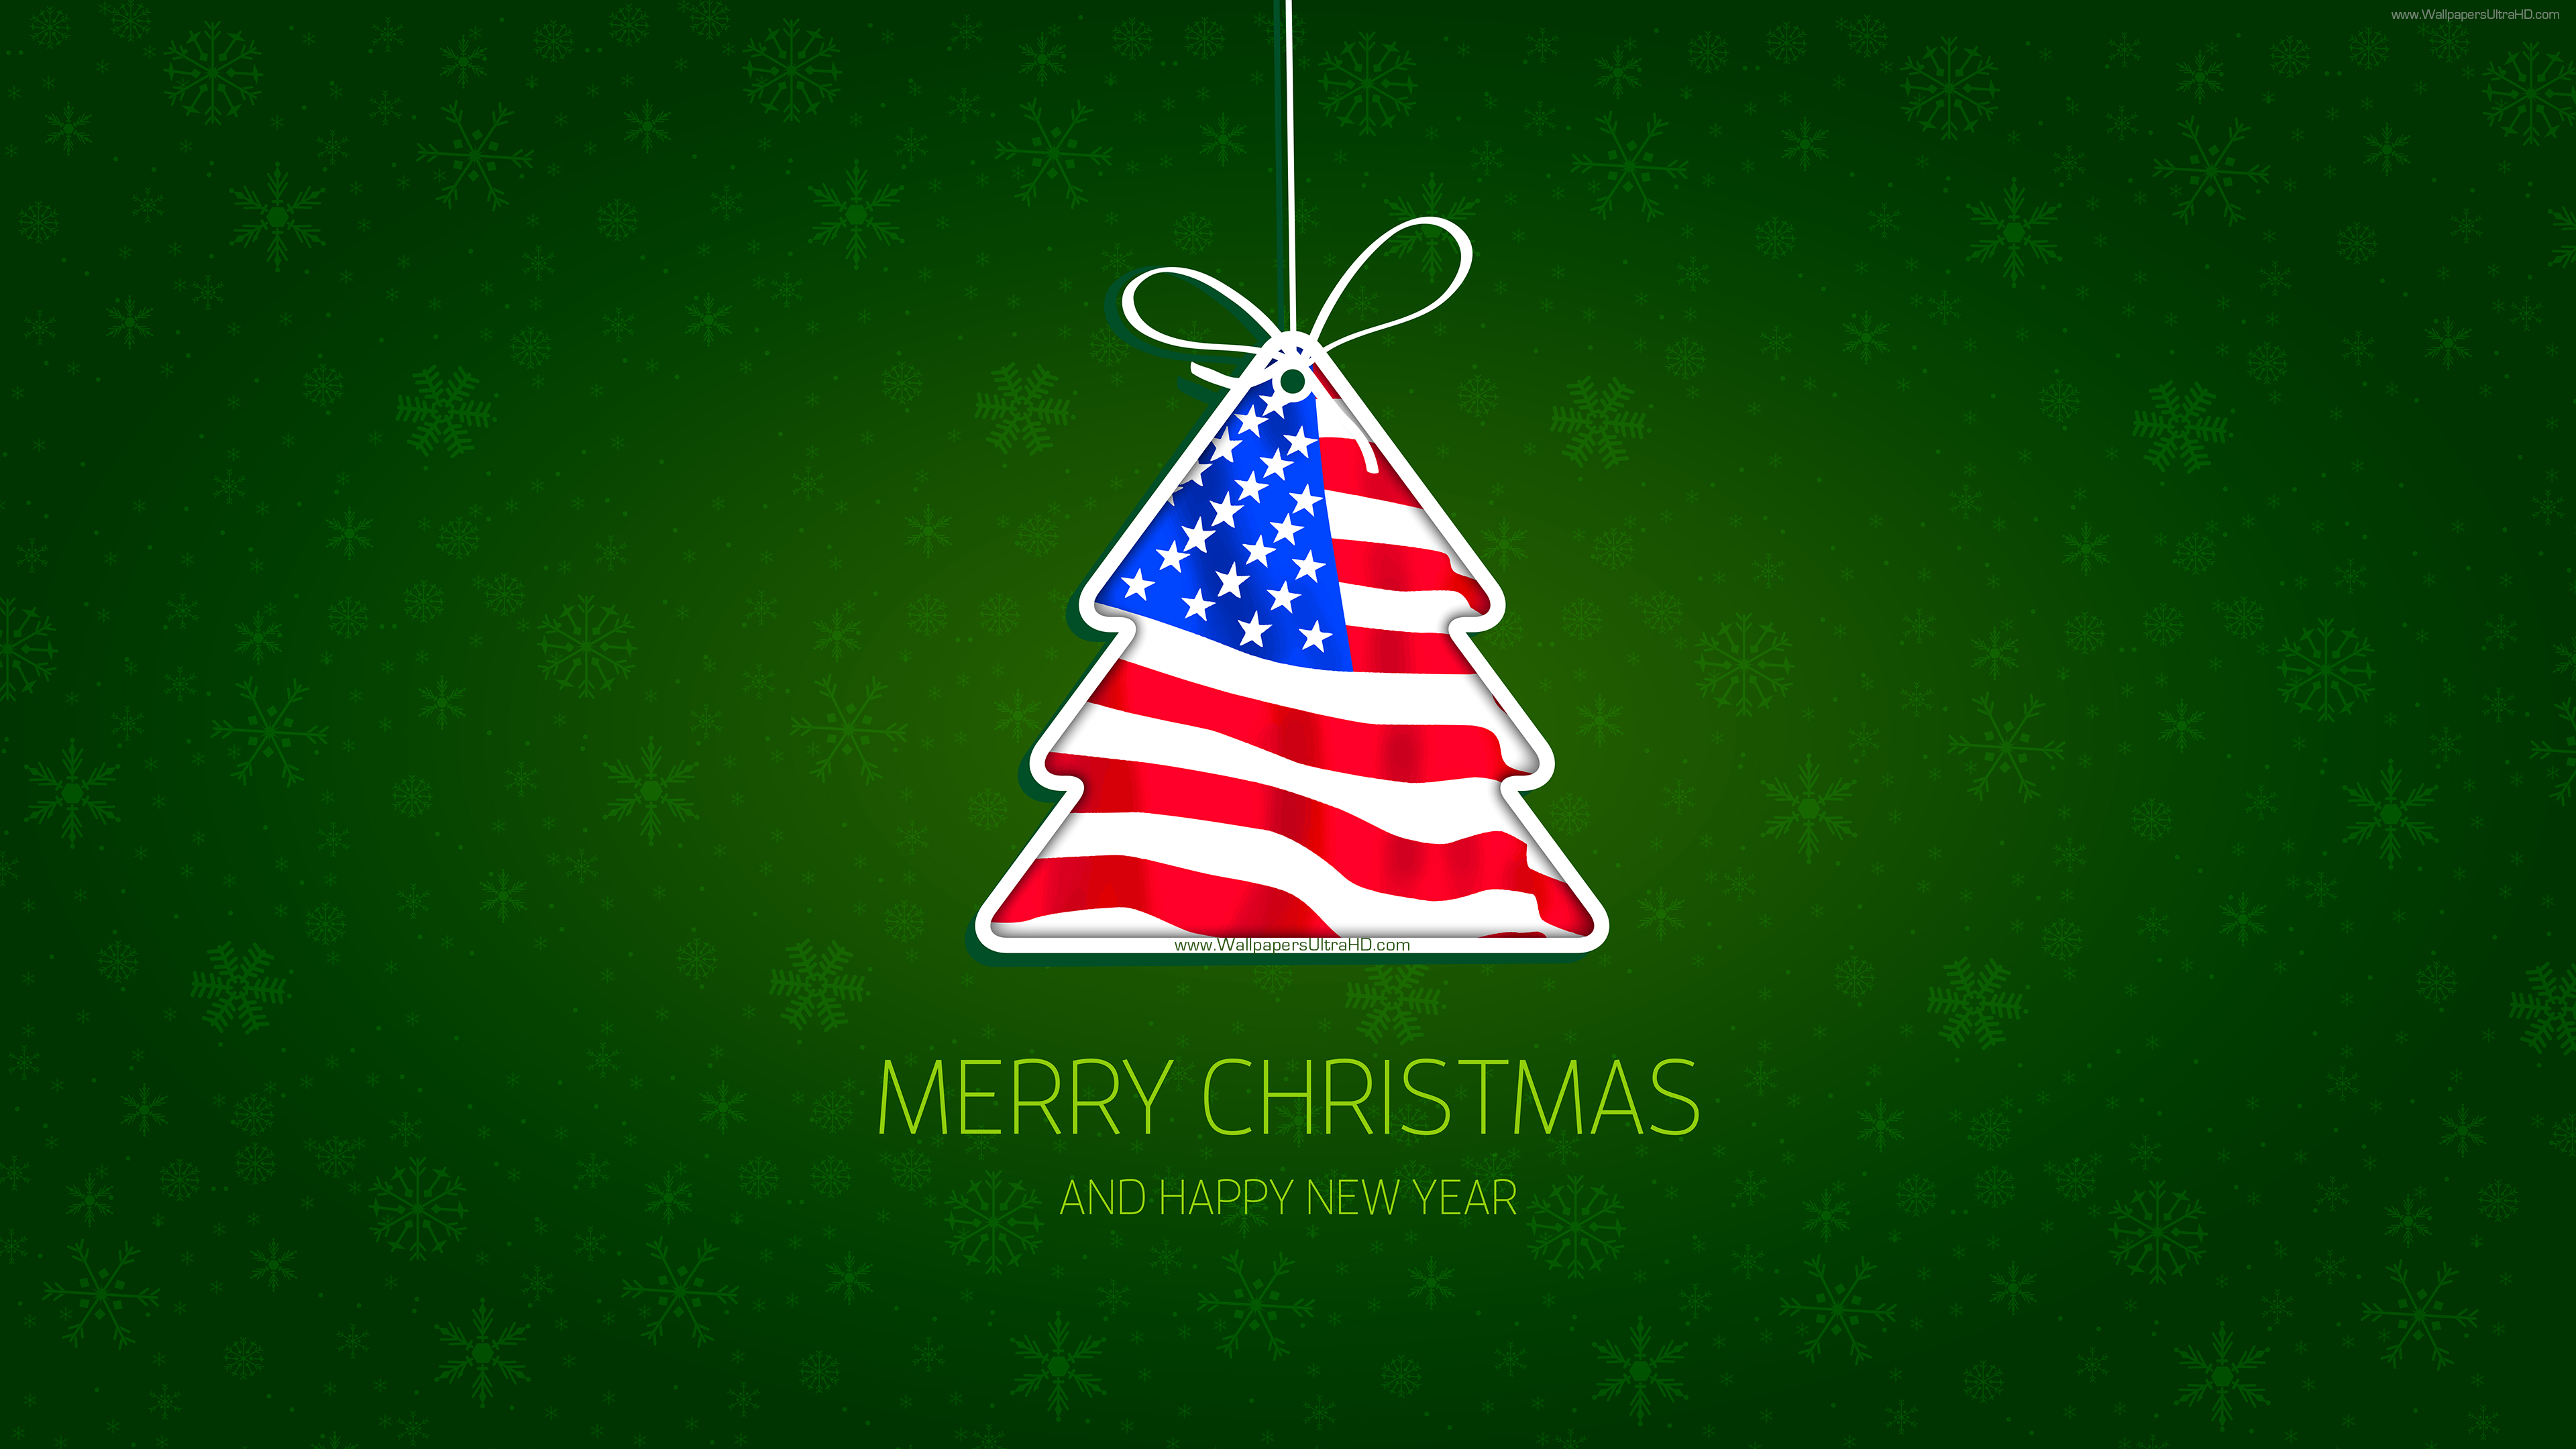 Christmas tree USA happy new year 4K wallpaper